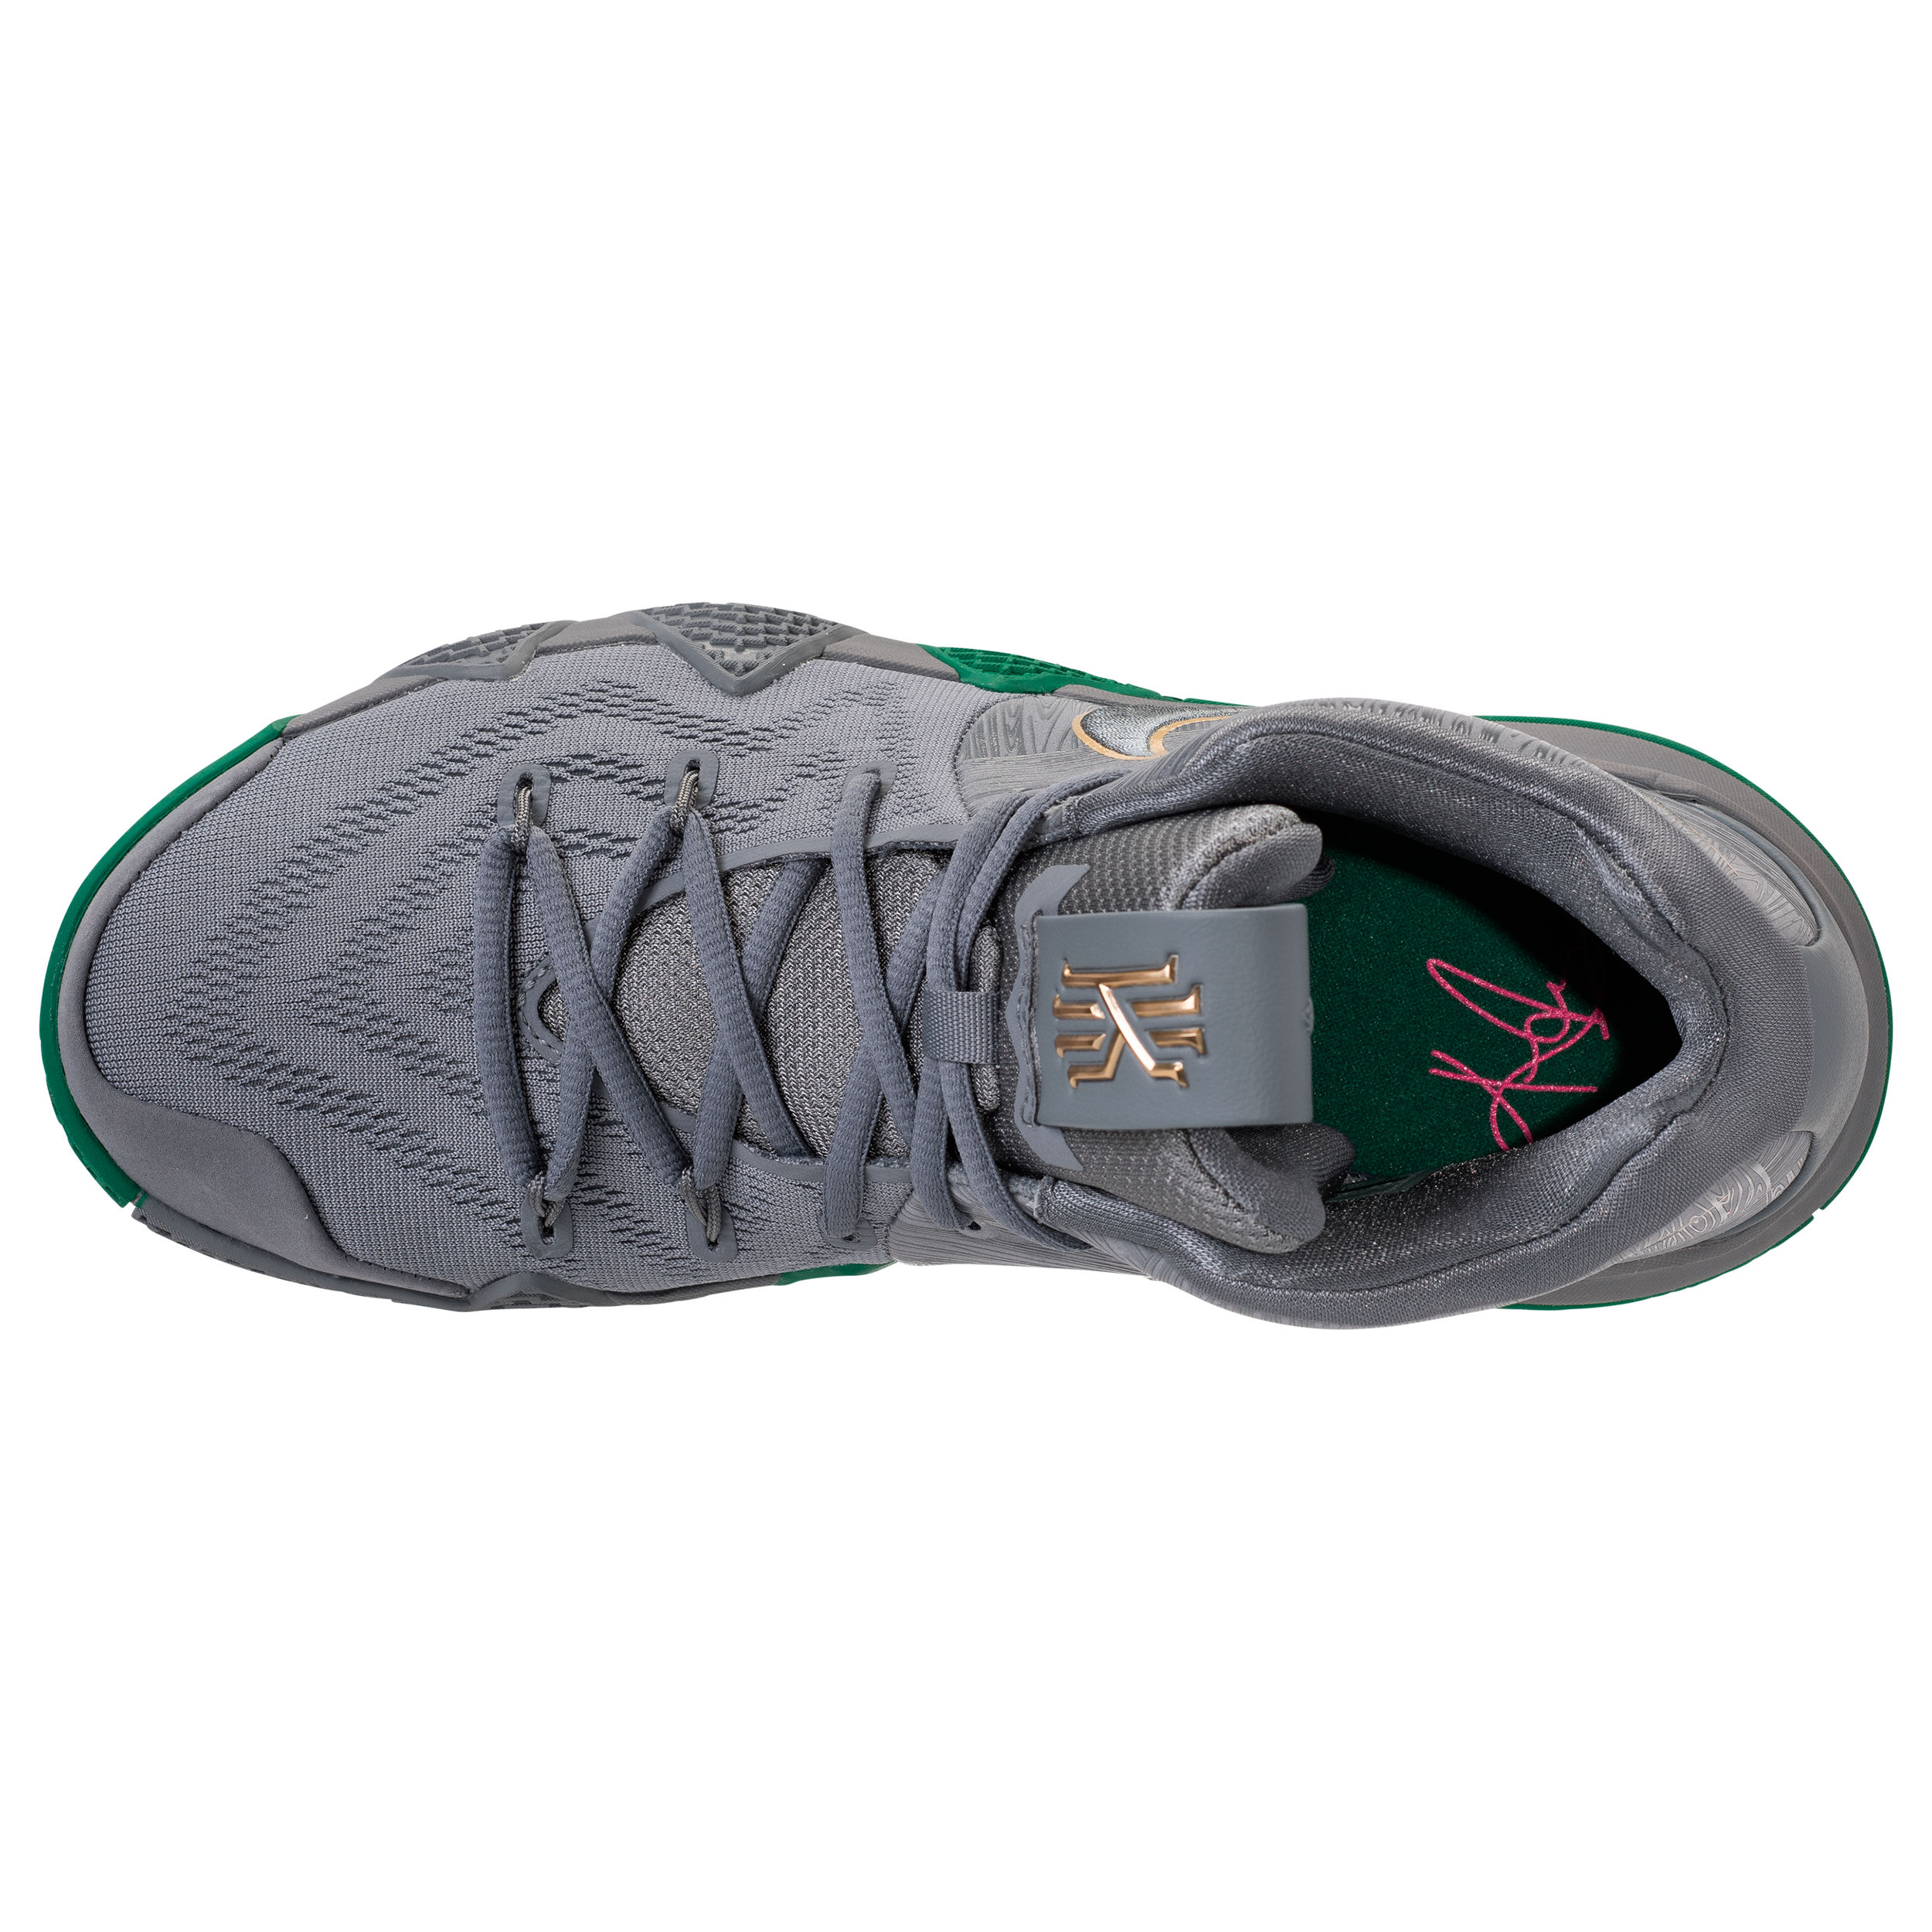 bfaeb02663 nike kyrie 4 city of guardians 3 - WearTesters